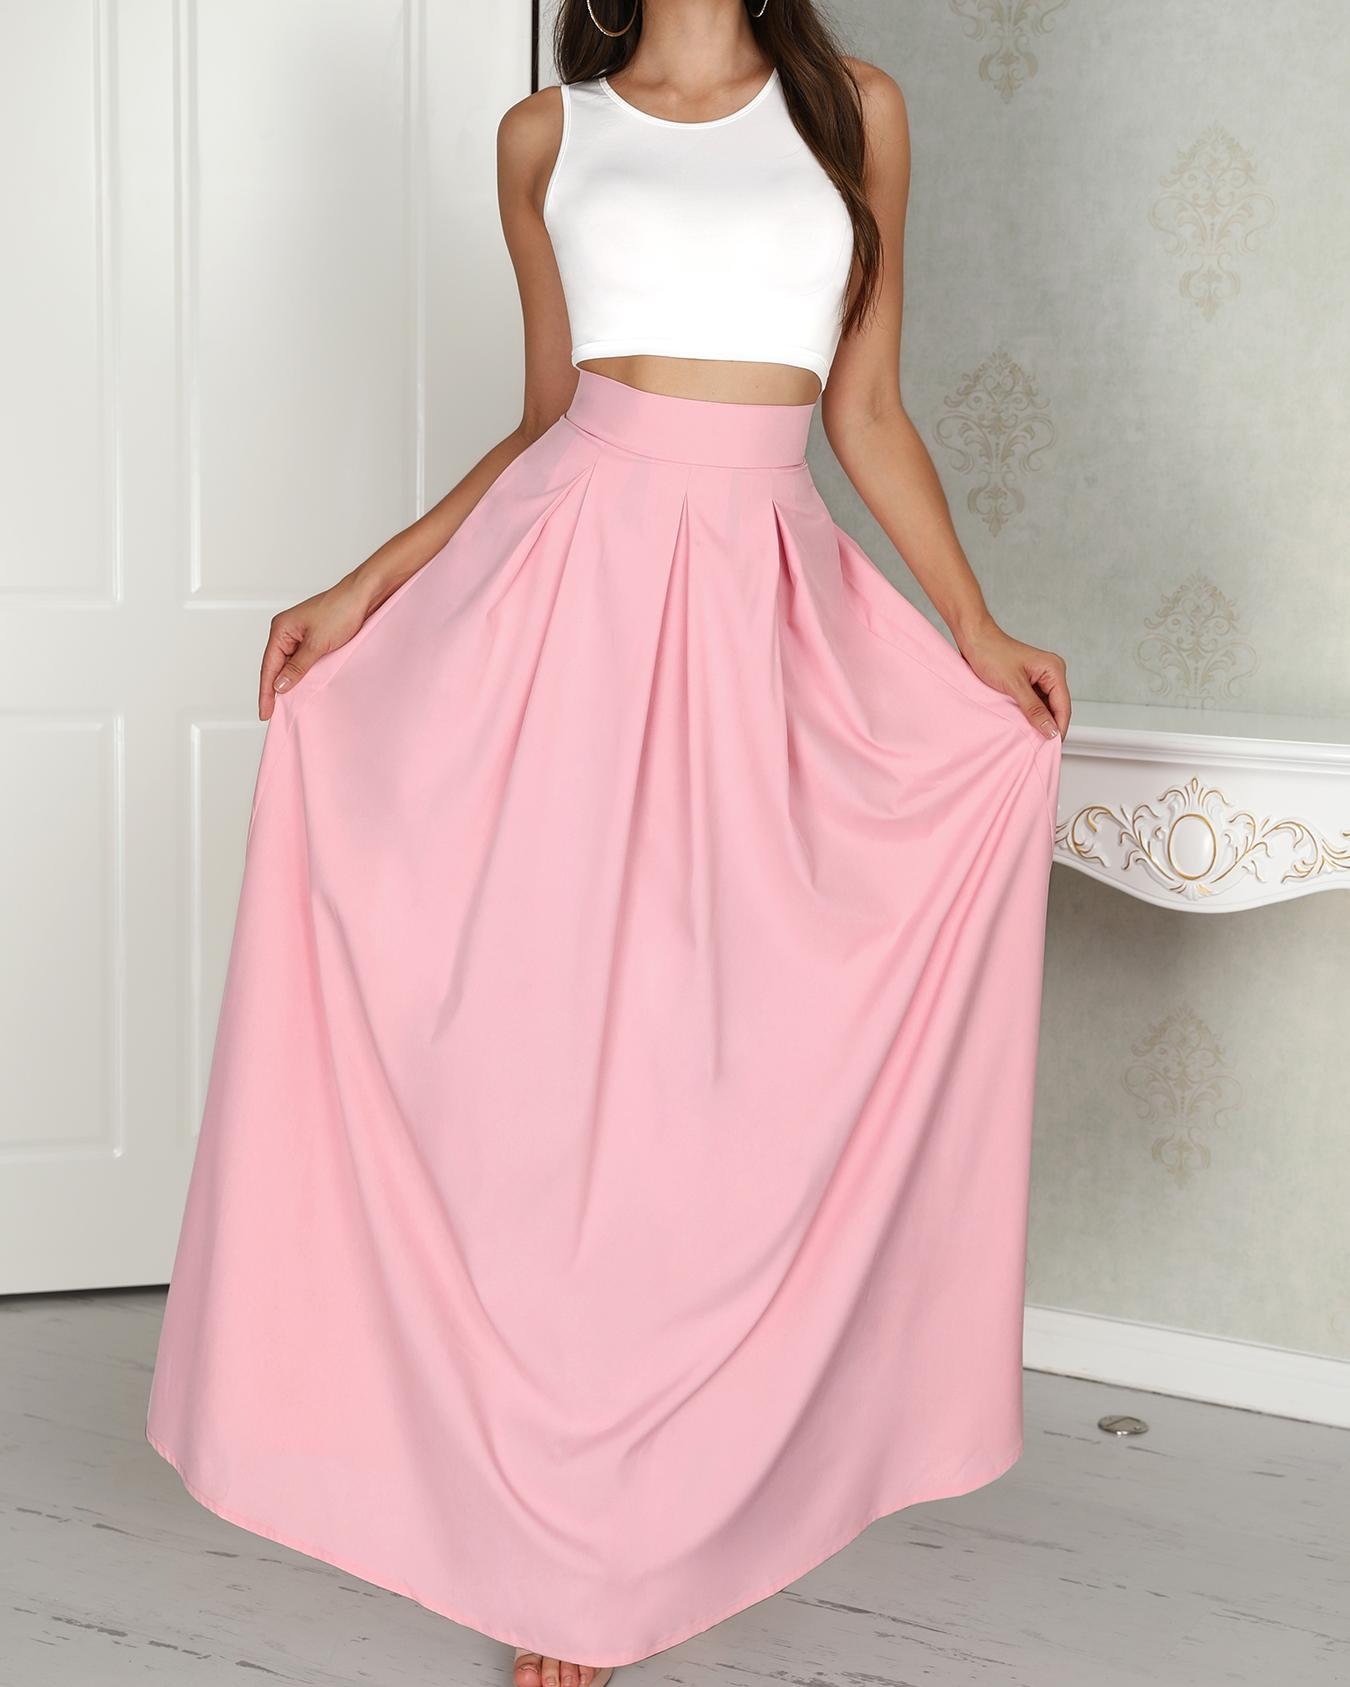 Women Two-Piece Suit Set Female Sleeveless Cropped Top /& Pleated Maxi Skirt Sets